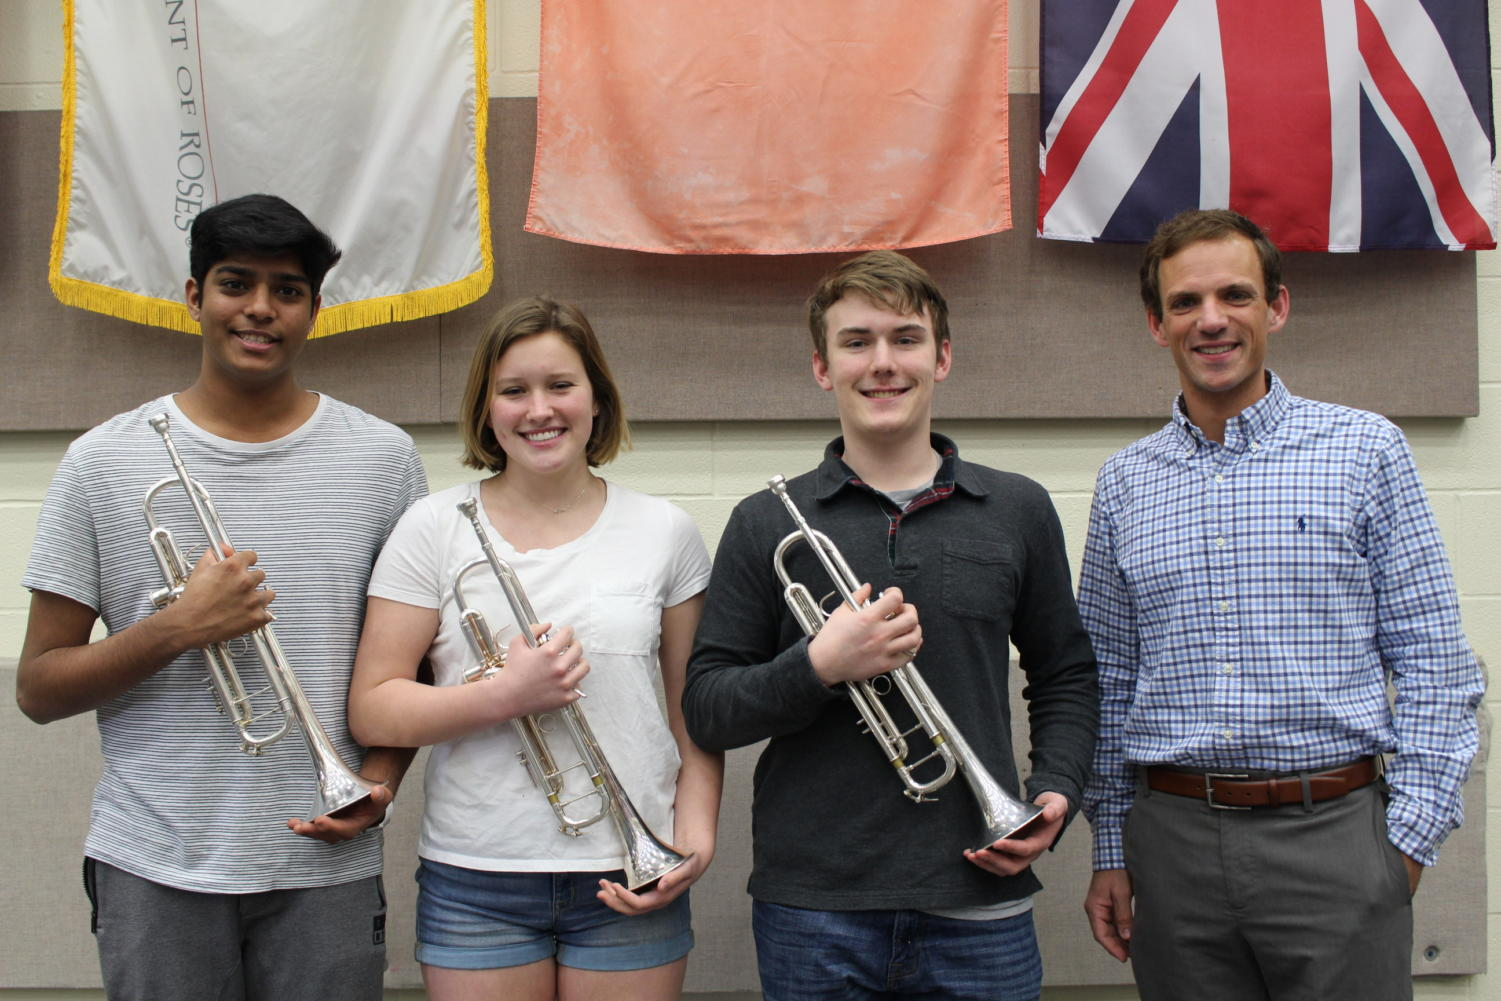 Coppell High School senior Supratik Pochampally, junior Terri Rauschenbach and senior Trevor Holmes stand with CISD Trumpet Instructor Dr. Jared Hunt in the CHS band room. The Ensemble won first place in the Trumpet Ensemble Division at the National Trumpet Competition on March 16 at the University of Kentucky in Lexington, Ky.